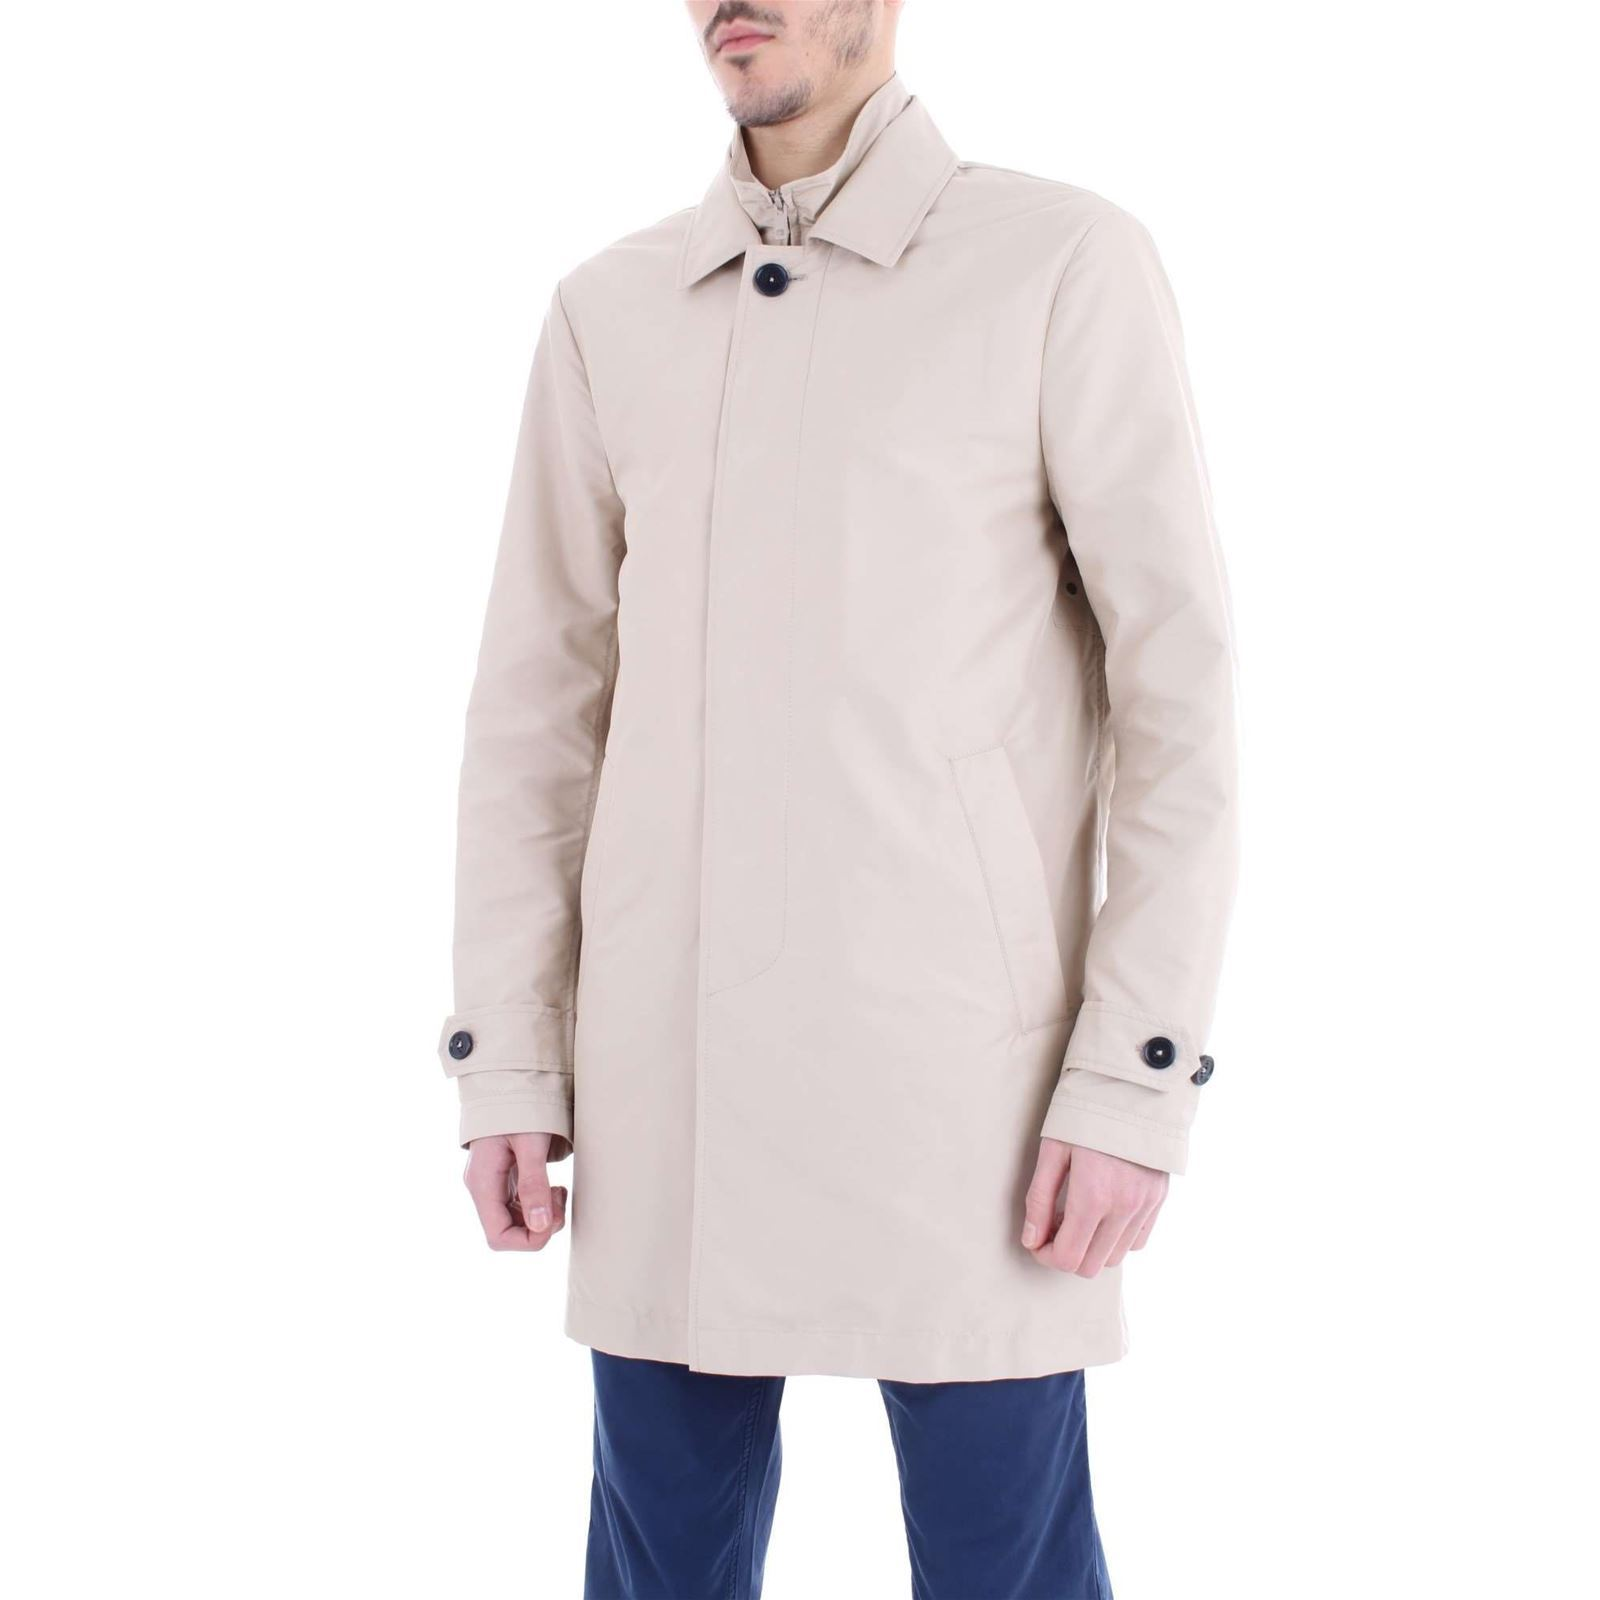 TrenchBeige Homme TrenchBeige Fay Fay Homme V 8nymwO0NvP